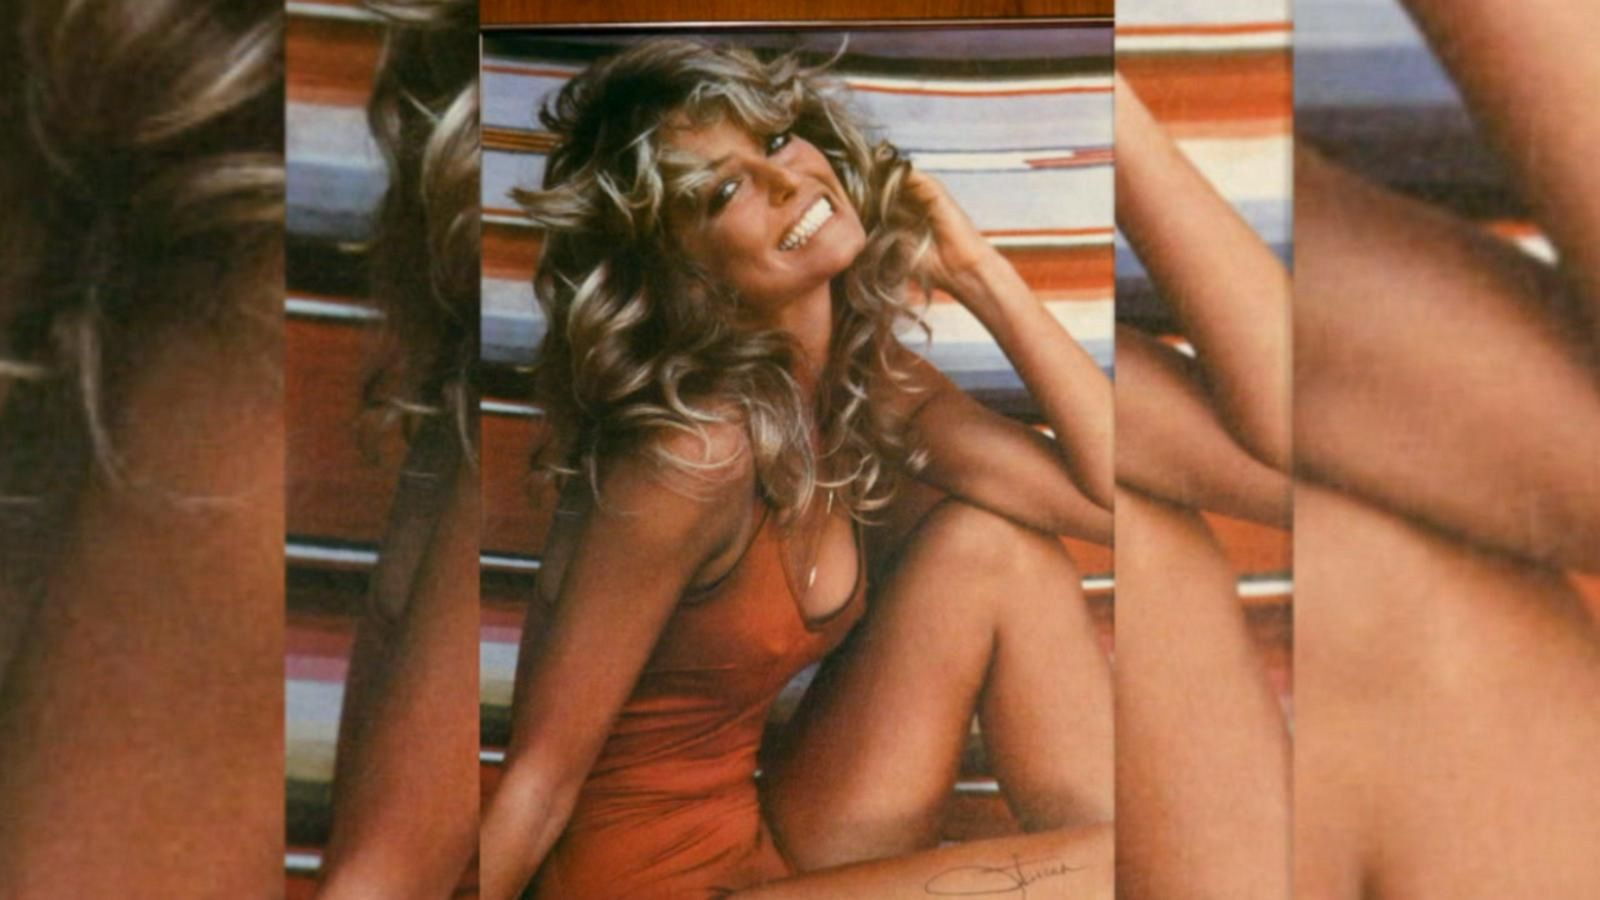 Angel Summer Nue the story behind 'charlie's angels' star farrah fawcett's